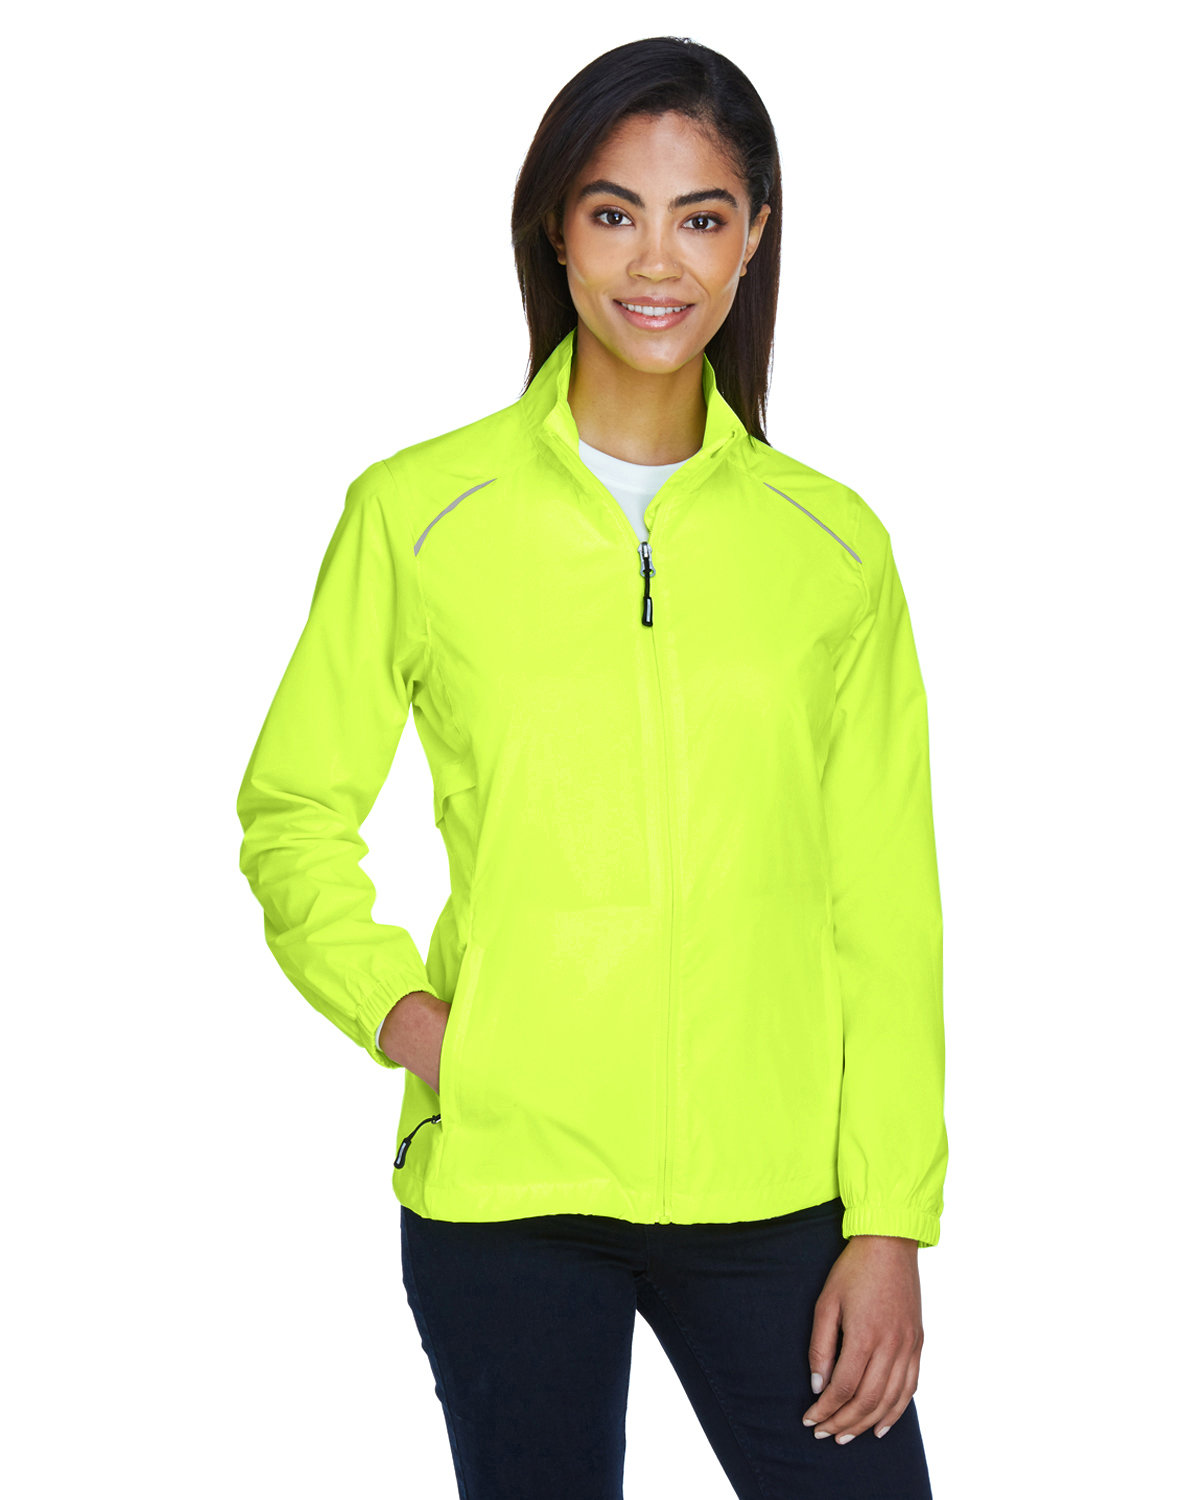 Core 365 Ladies' Motivate Unlined Lightweight Jacket SAFETY YELLOW